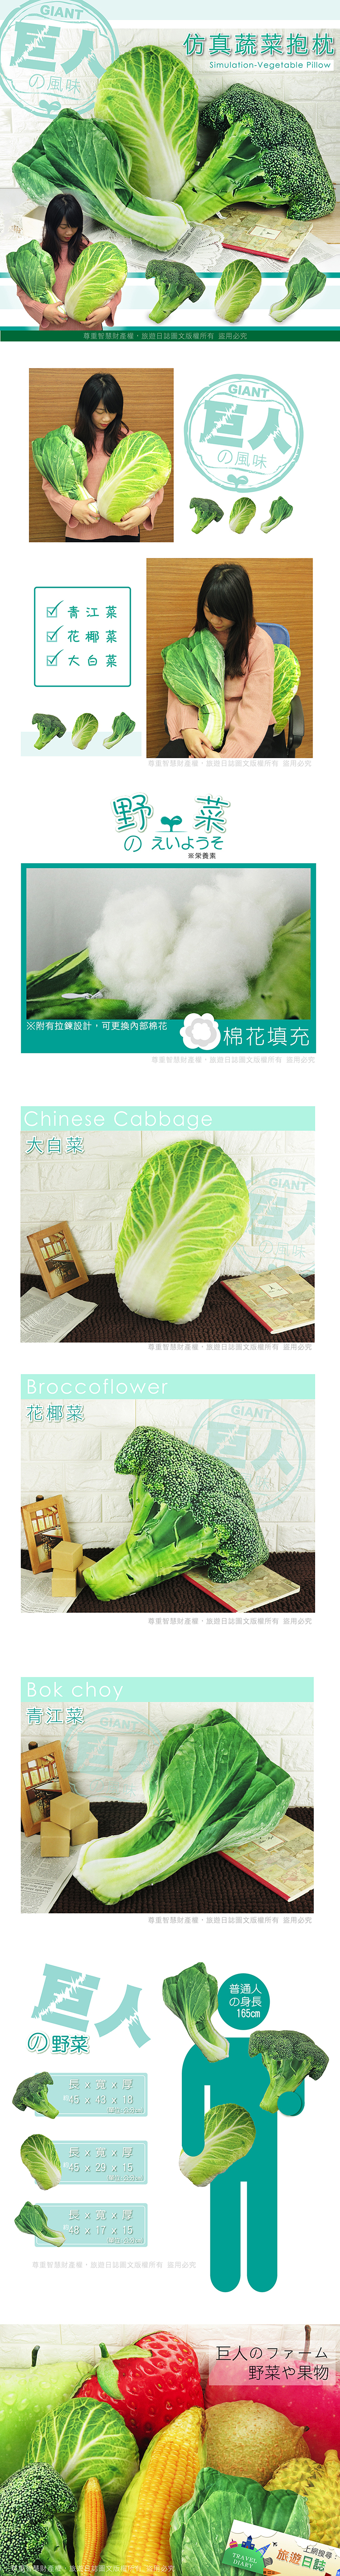 http://mr-bear.mvp5-1.com/TRAVELDIARY/CreativeProducts/Simulation-Vegetable_Pillow.jpg